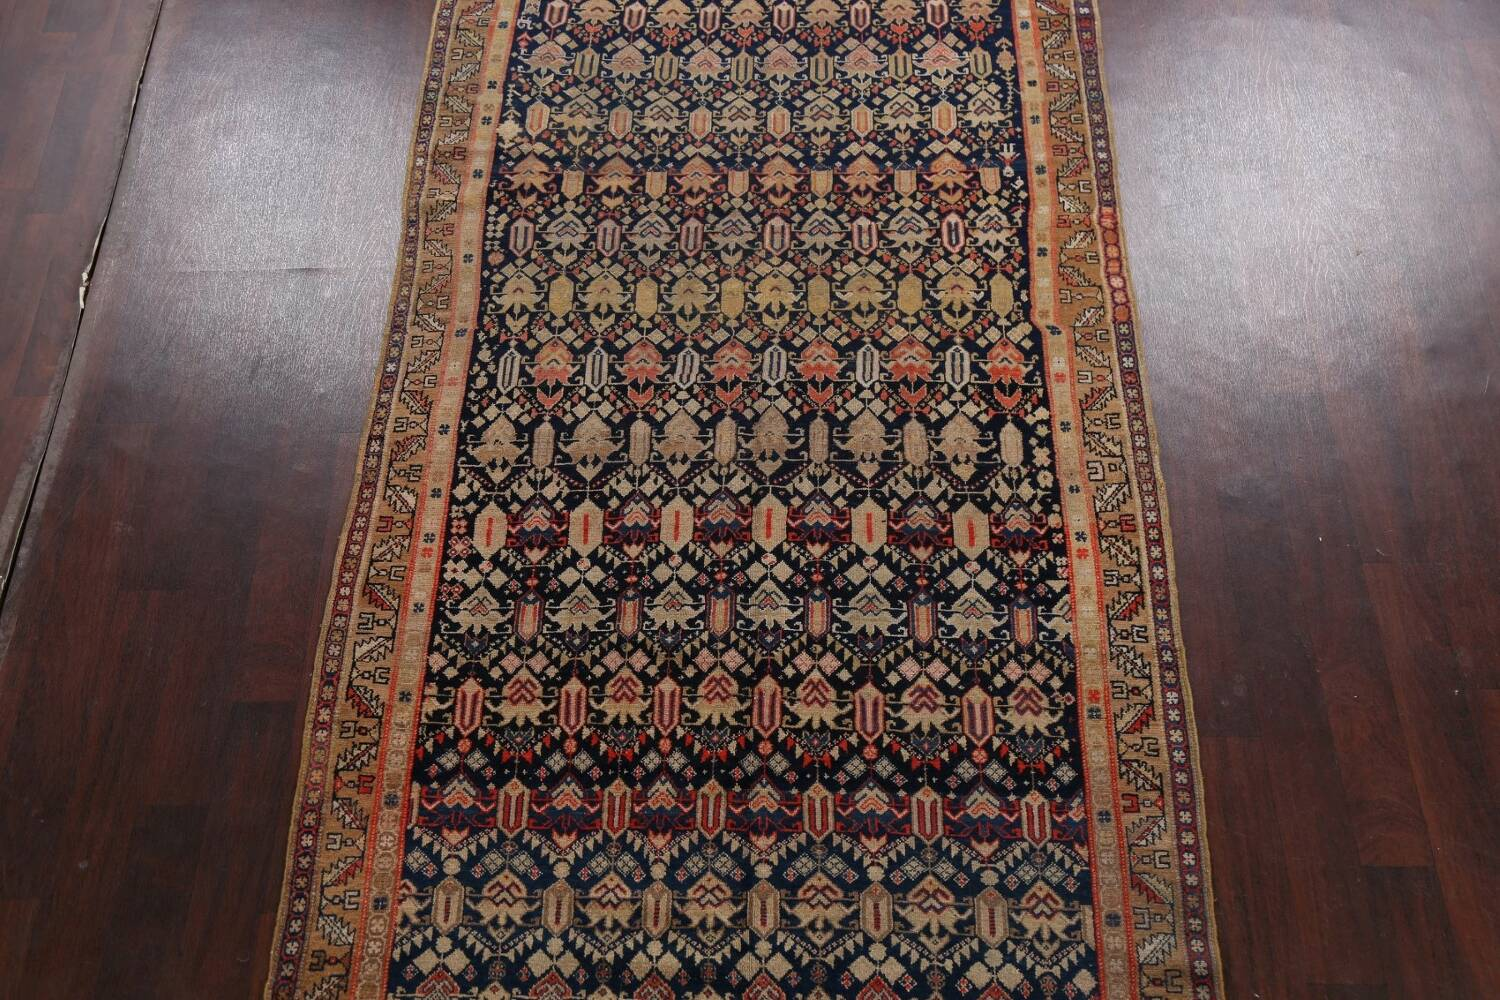 Pre-1900 Antique Vegetable Dye Malayer Persian Area Rug 5x11 image 3